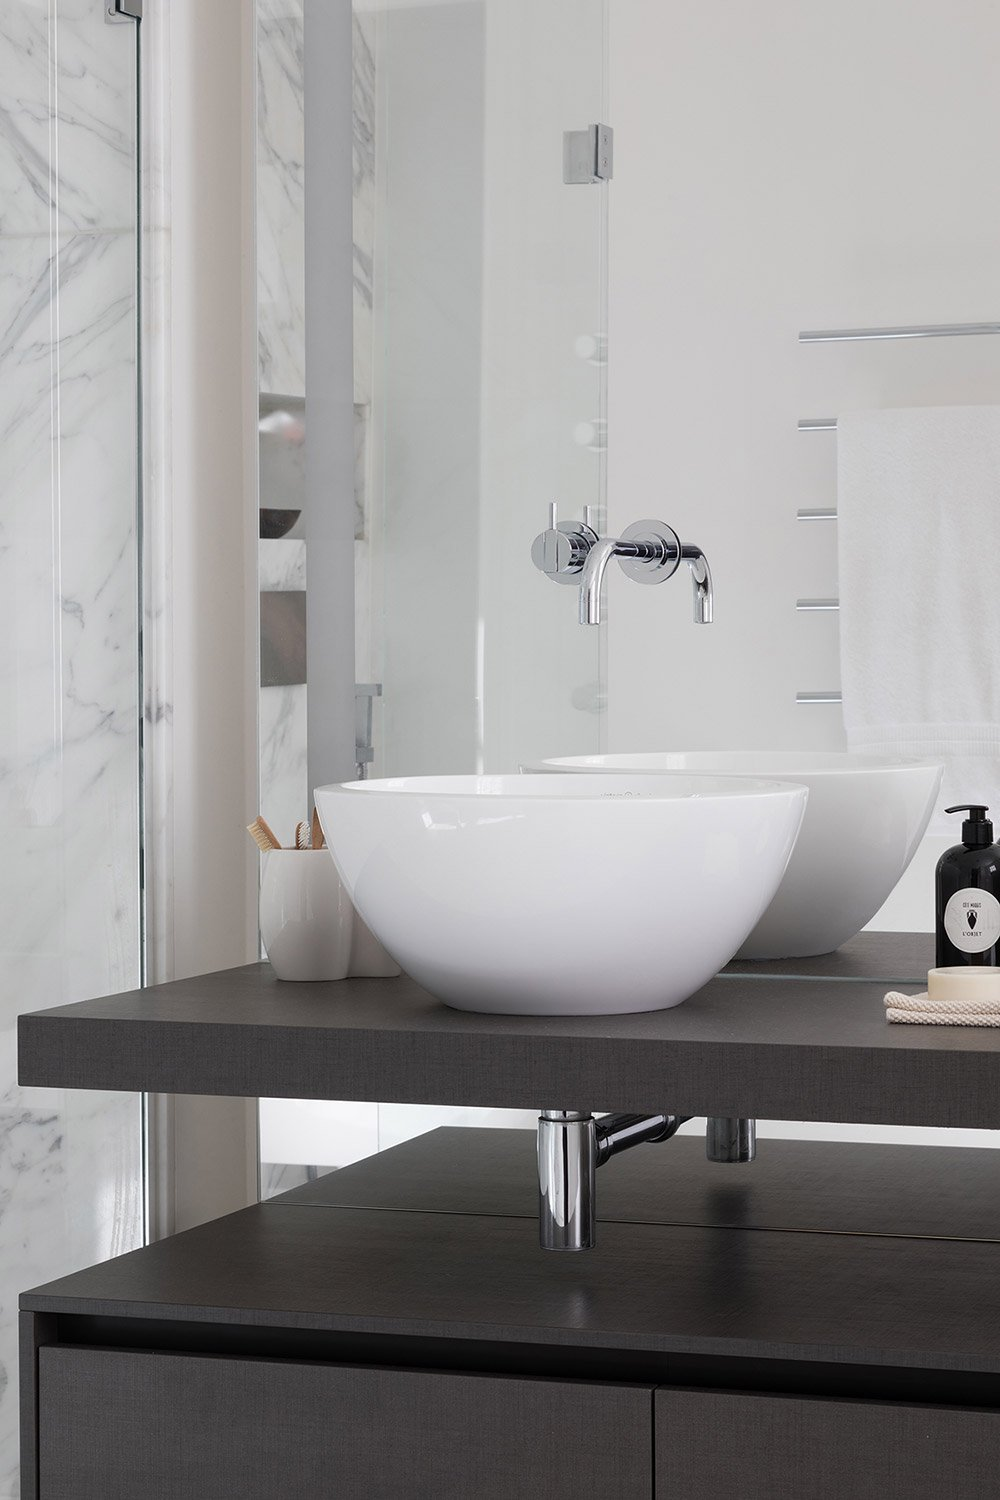 White bathroom with designer basin